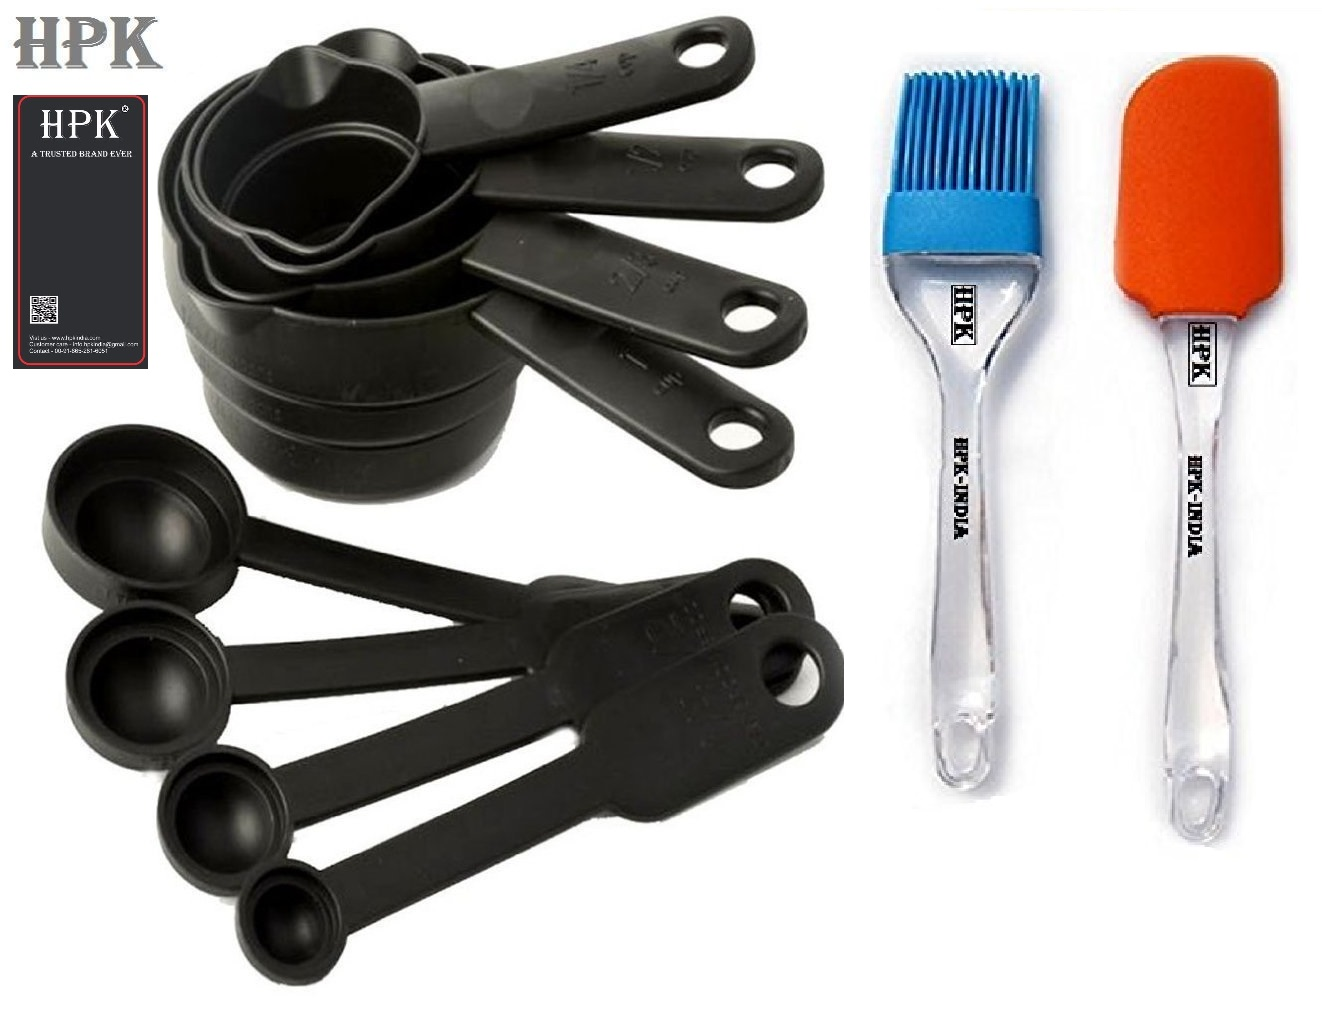 Hpk 8 Piece Measuring Cups & Spoons  2 Pcs Silicone Spatula And Pastry Brush